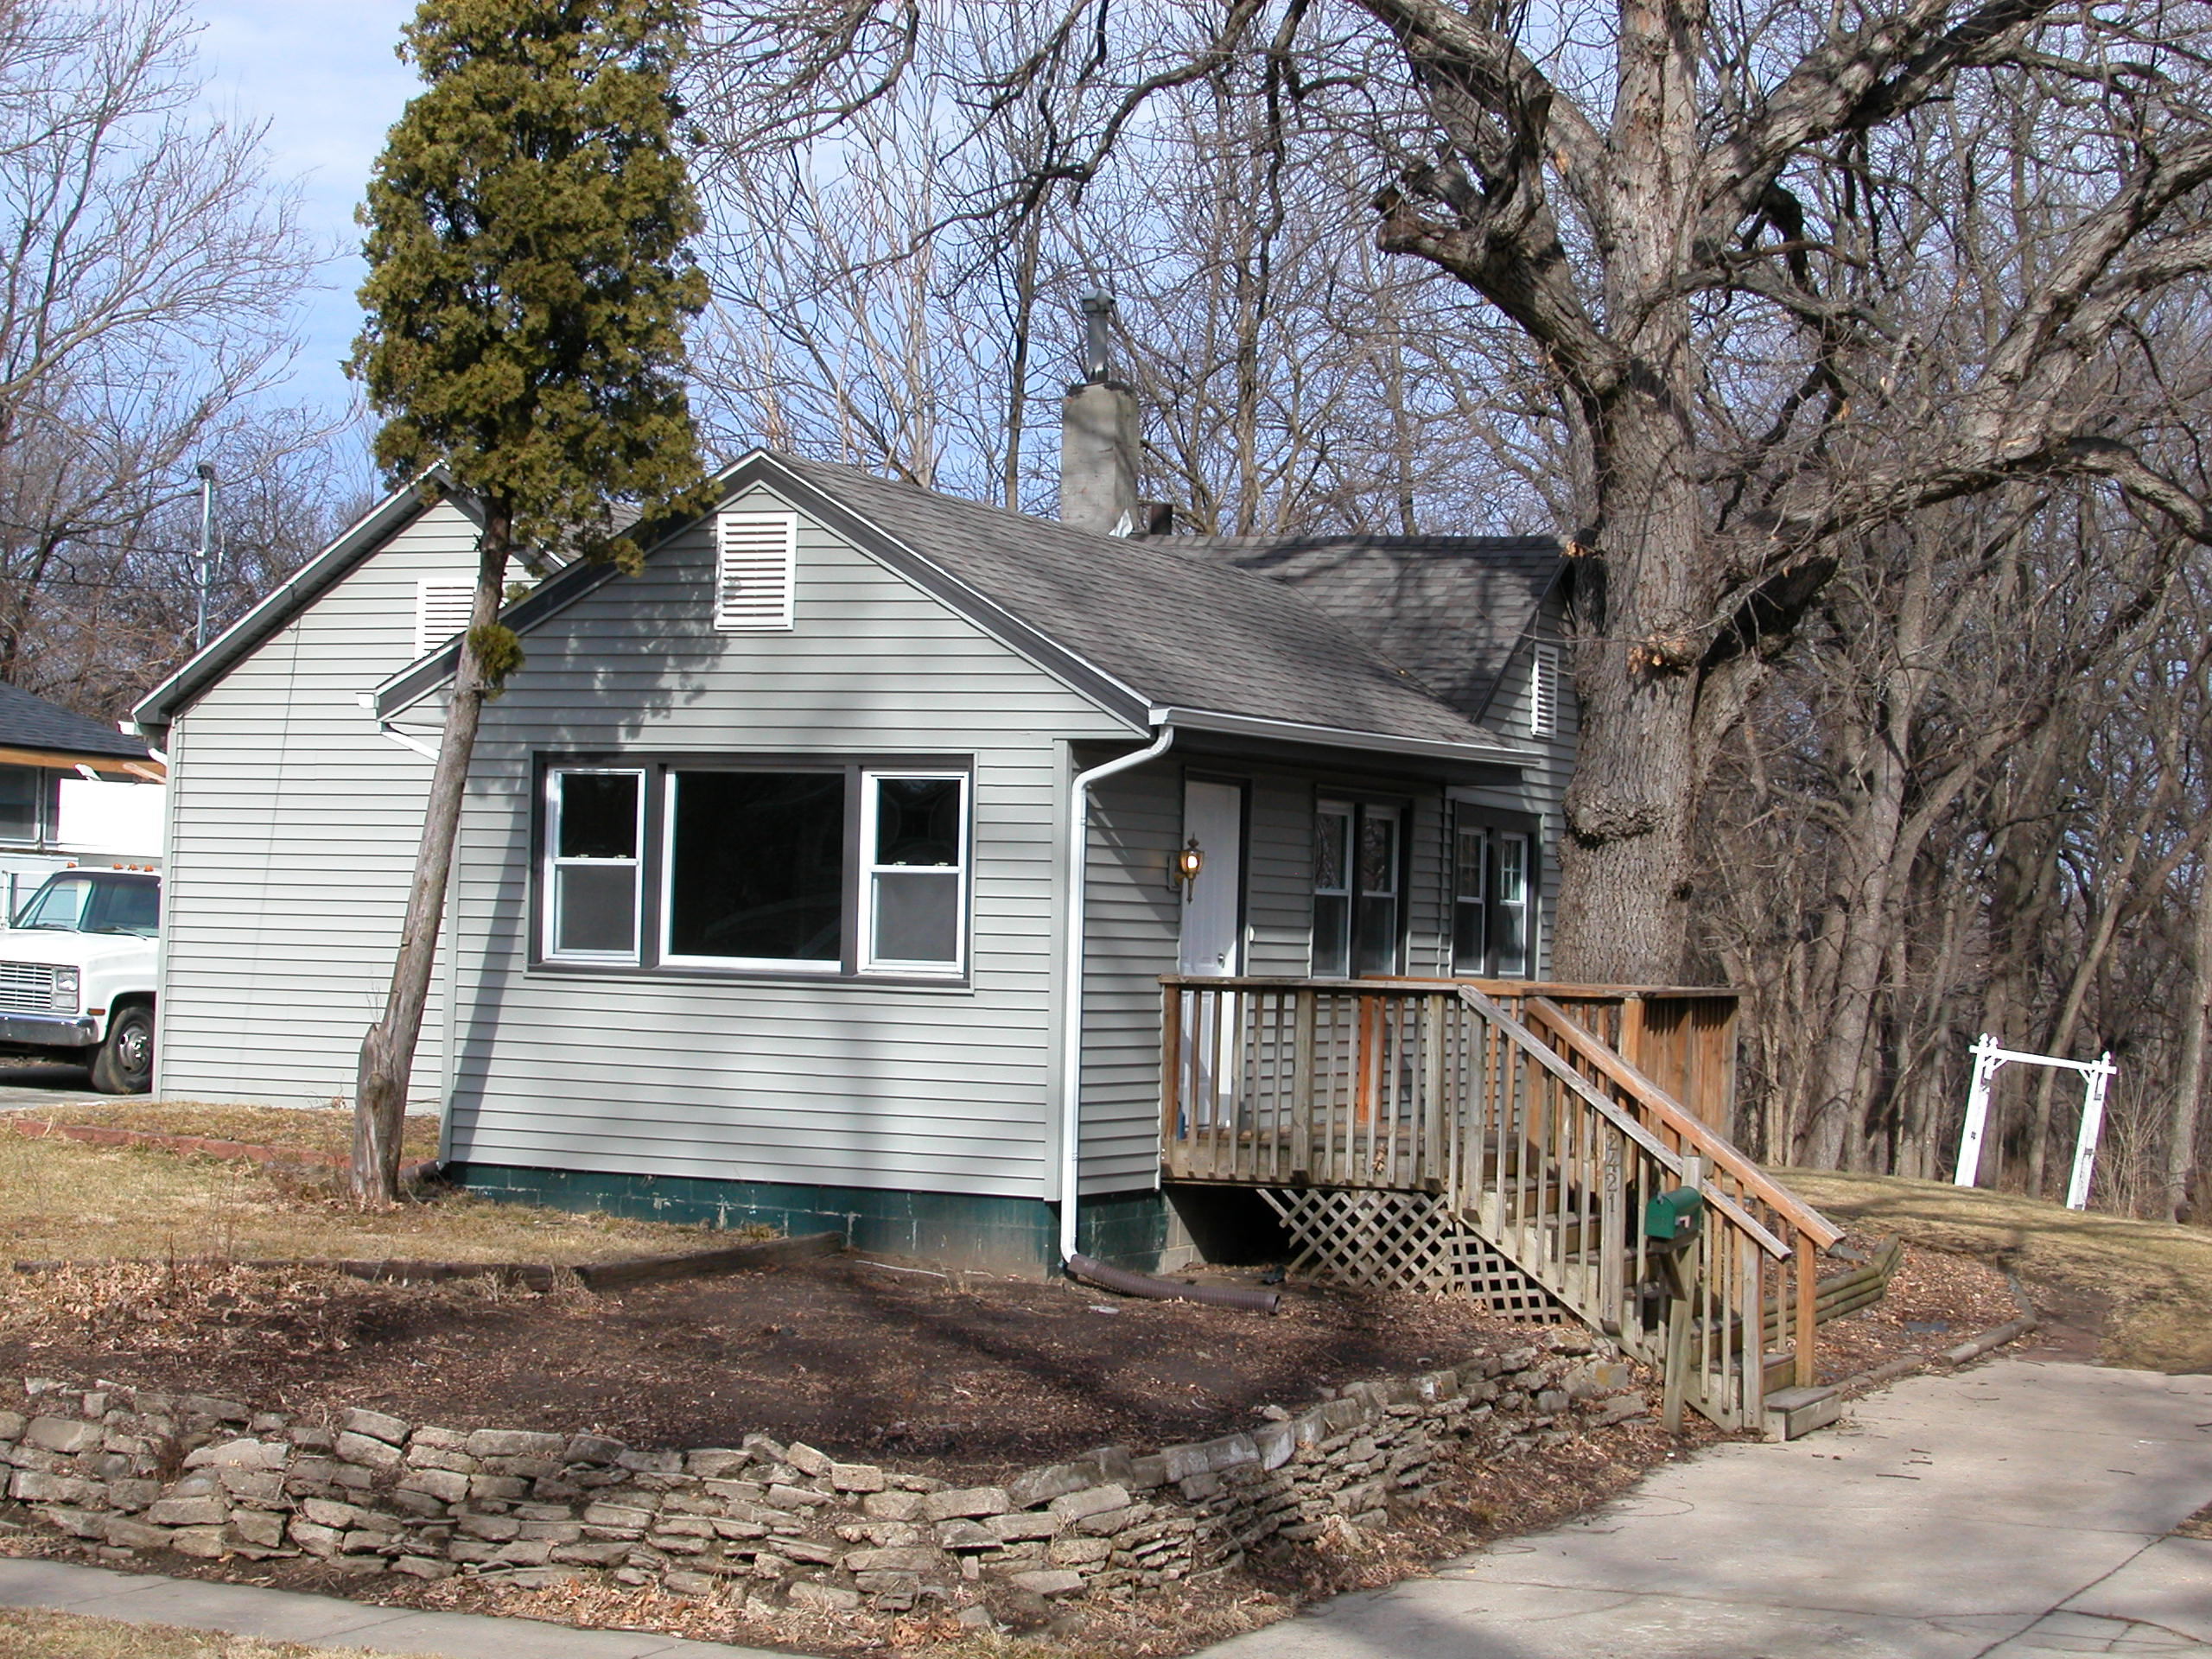 Home For Sale at 2421 Franklin Ave, Des Moines, IA 50310